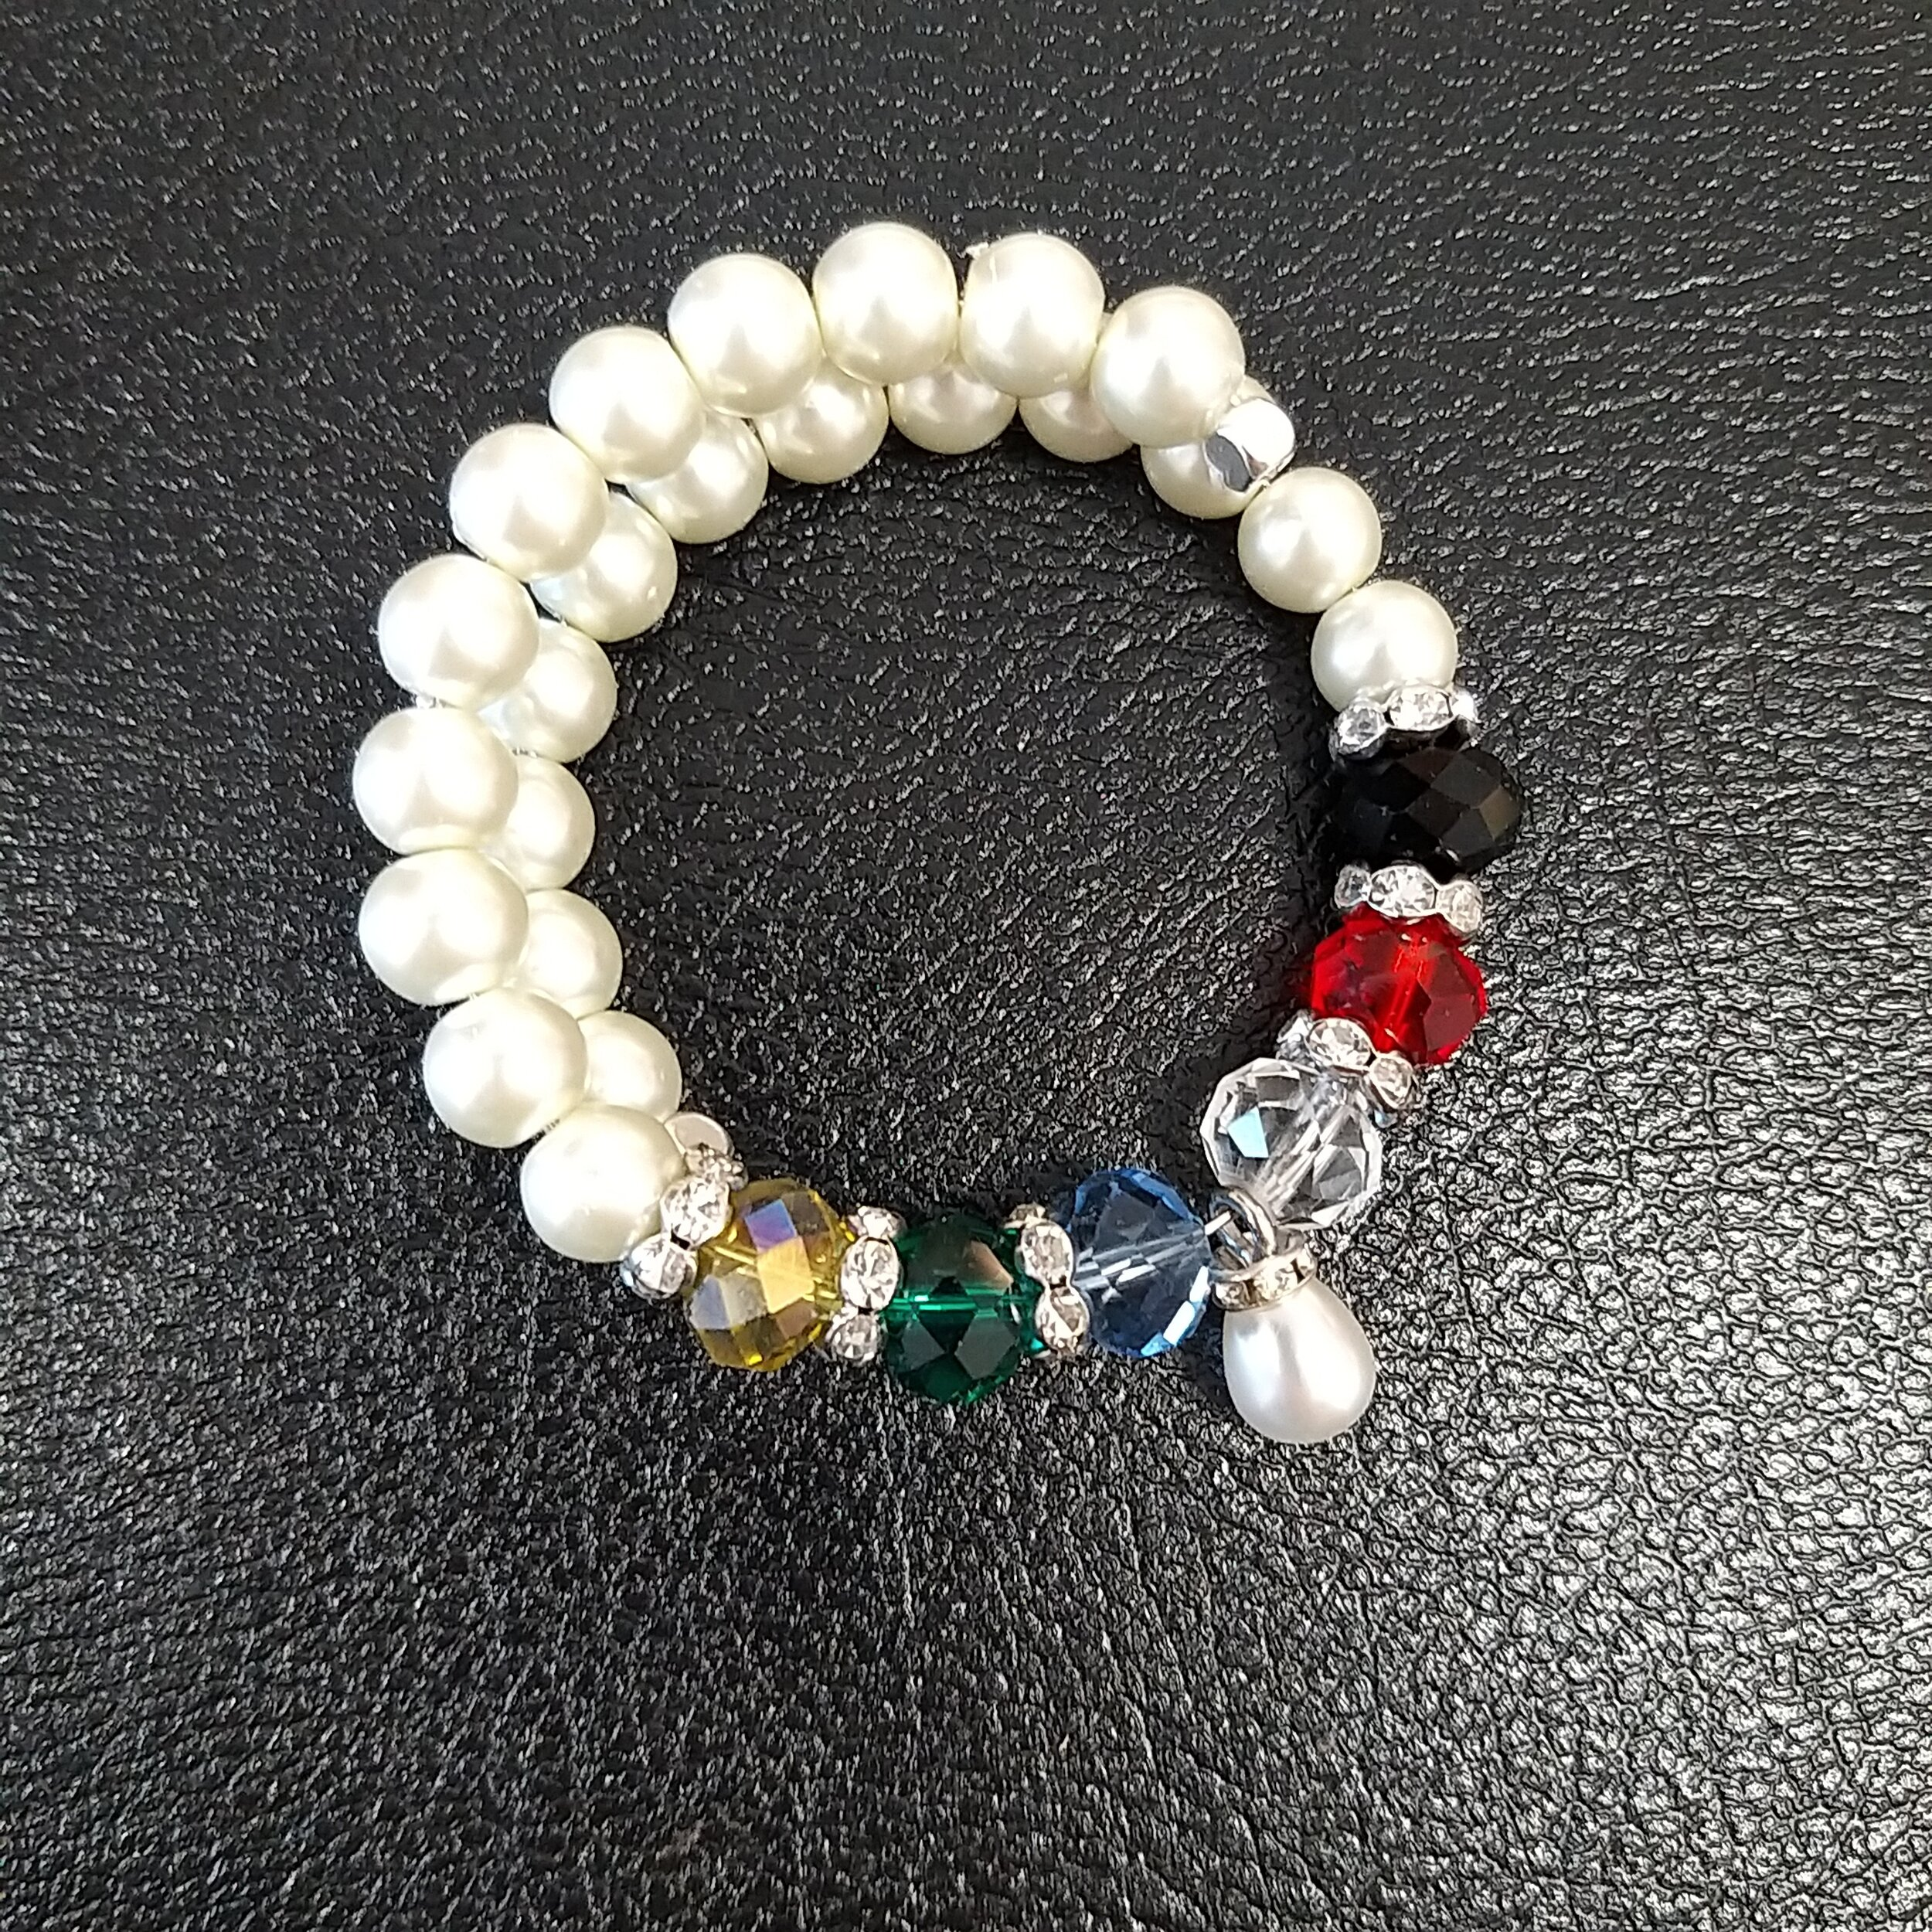 #AL-B 190914 - Pearl bracelet with Droplet  suggested $75 USD - Terms Available